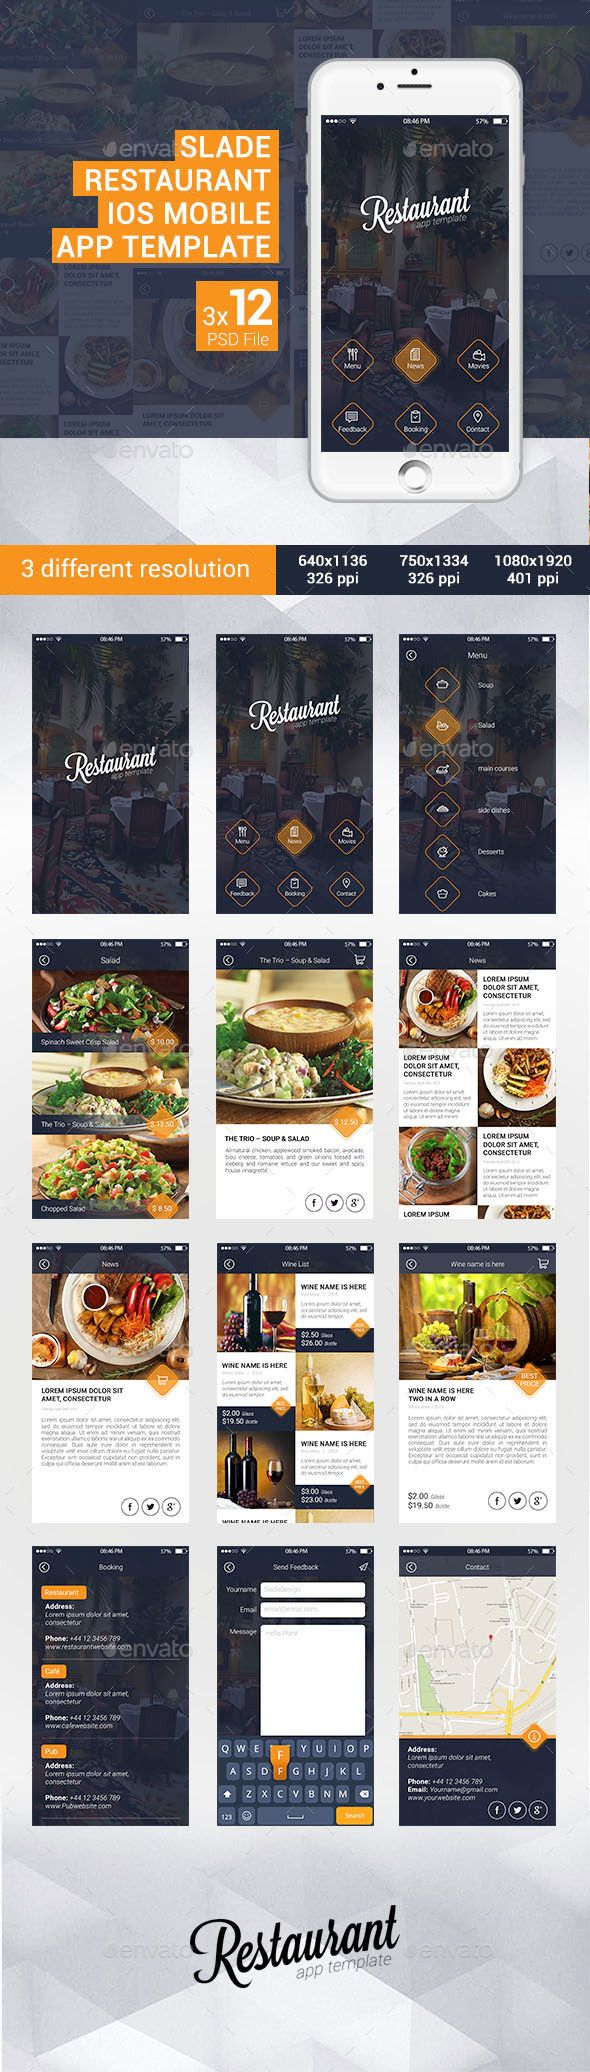 Slade Restaurant iOS Mobile App User Interface Template #design #ui Download: http://graphicriver.net/item/slade-restaurant-ios-mobile-app-template/11299926?ref=ksioks